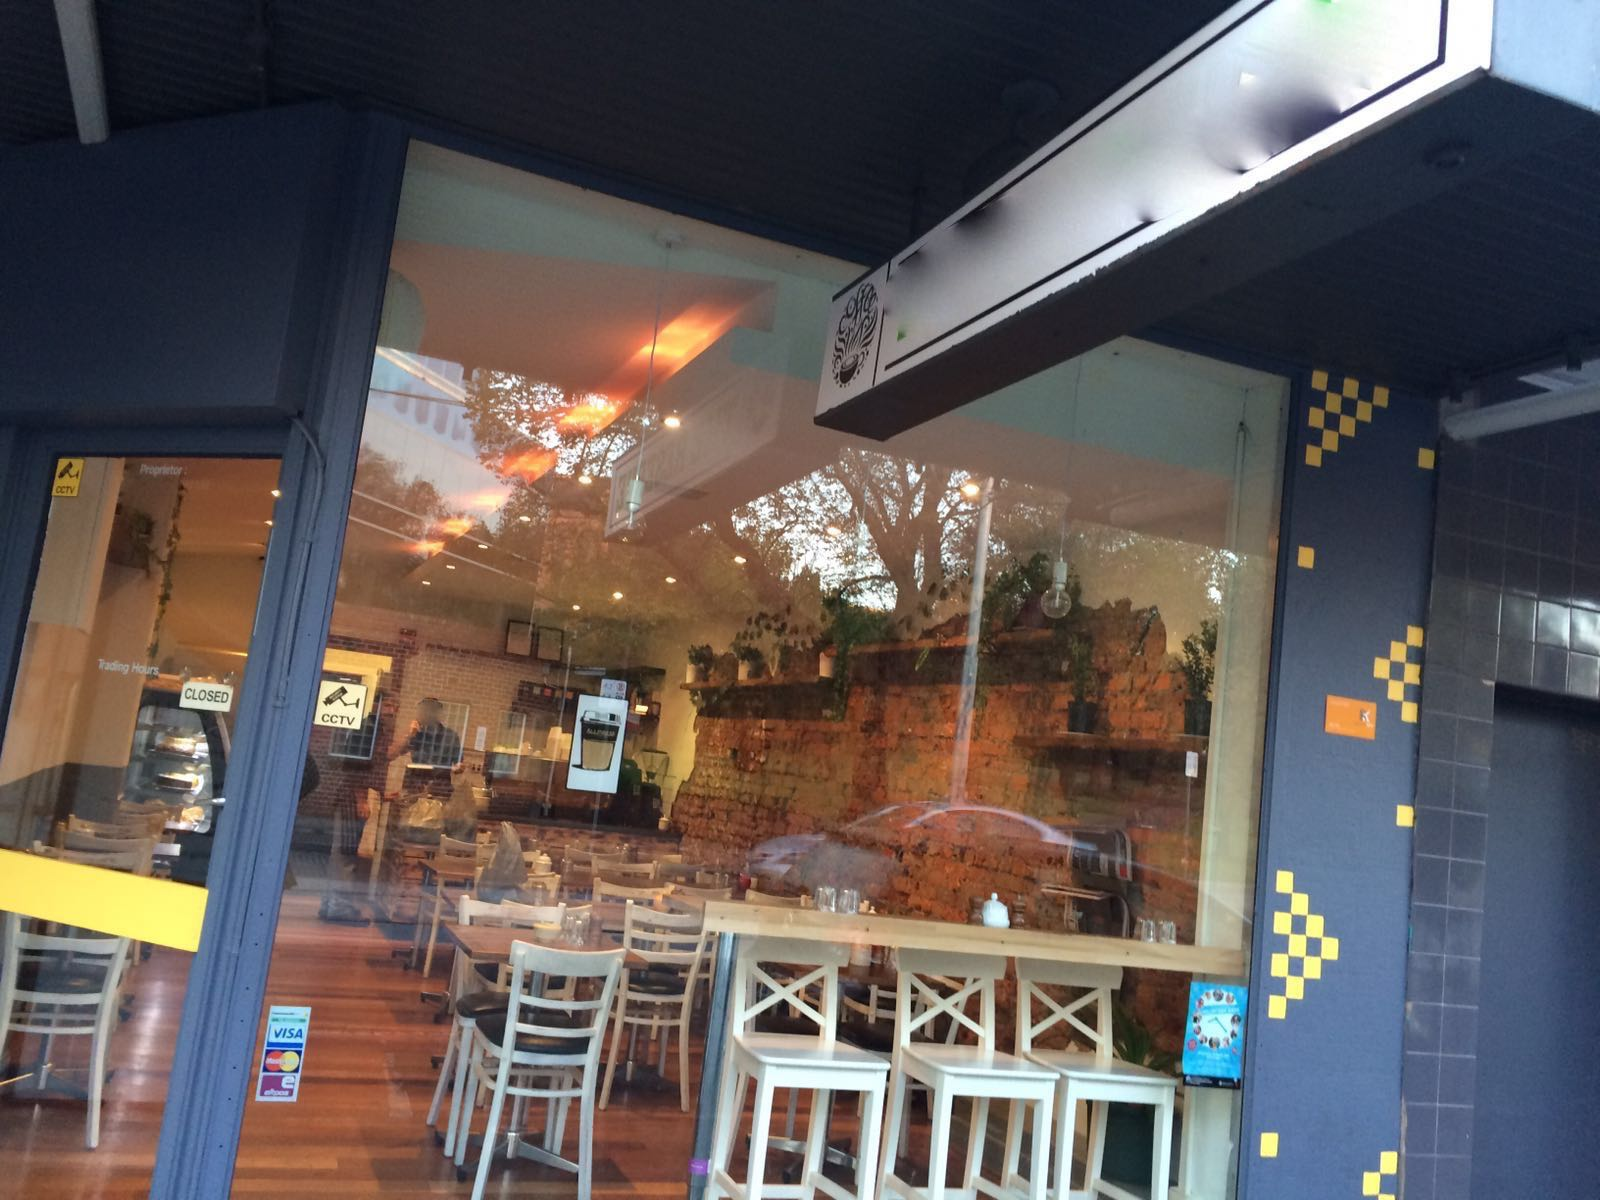 5 Day Cafe Business For Sale with Excellent Location